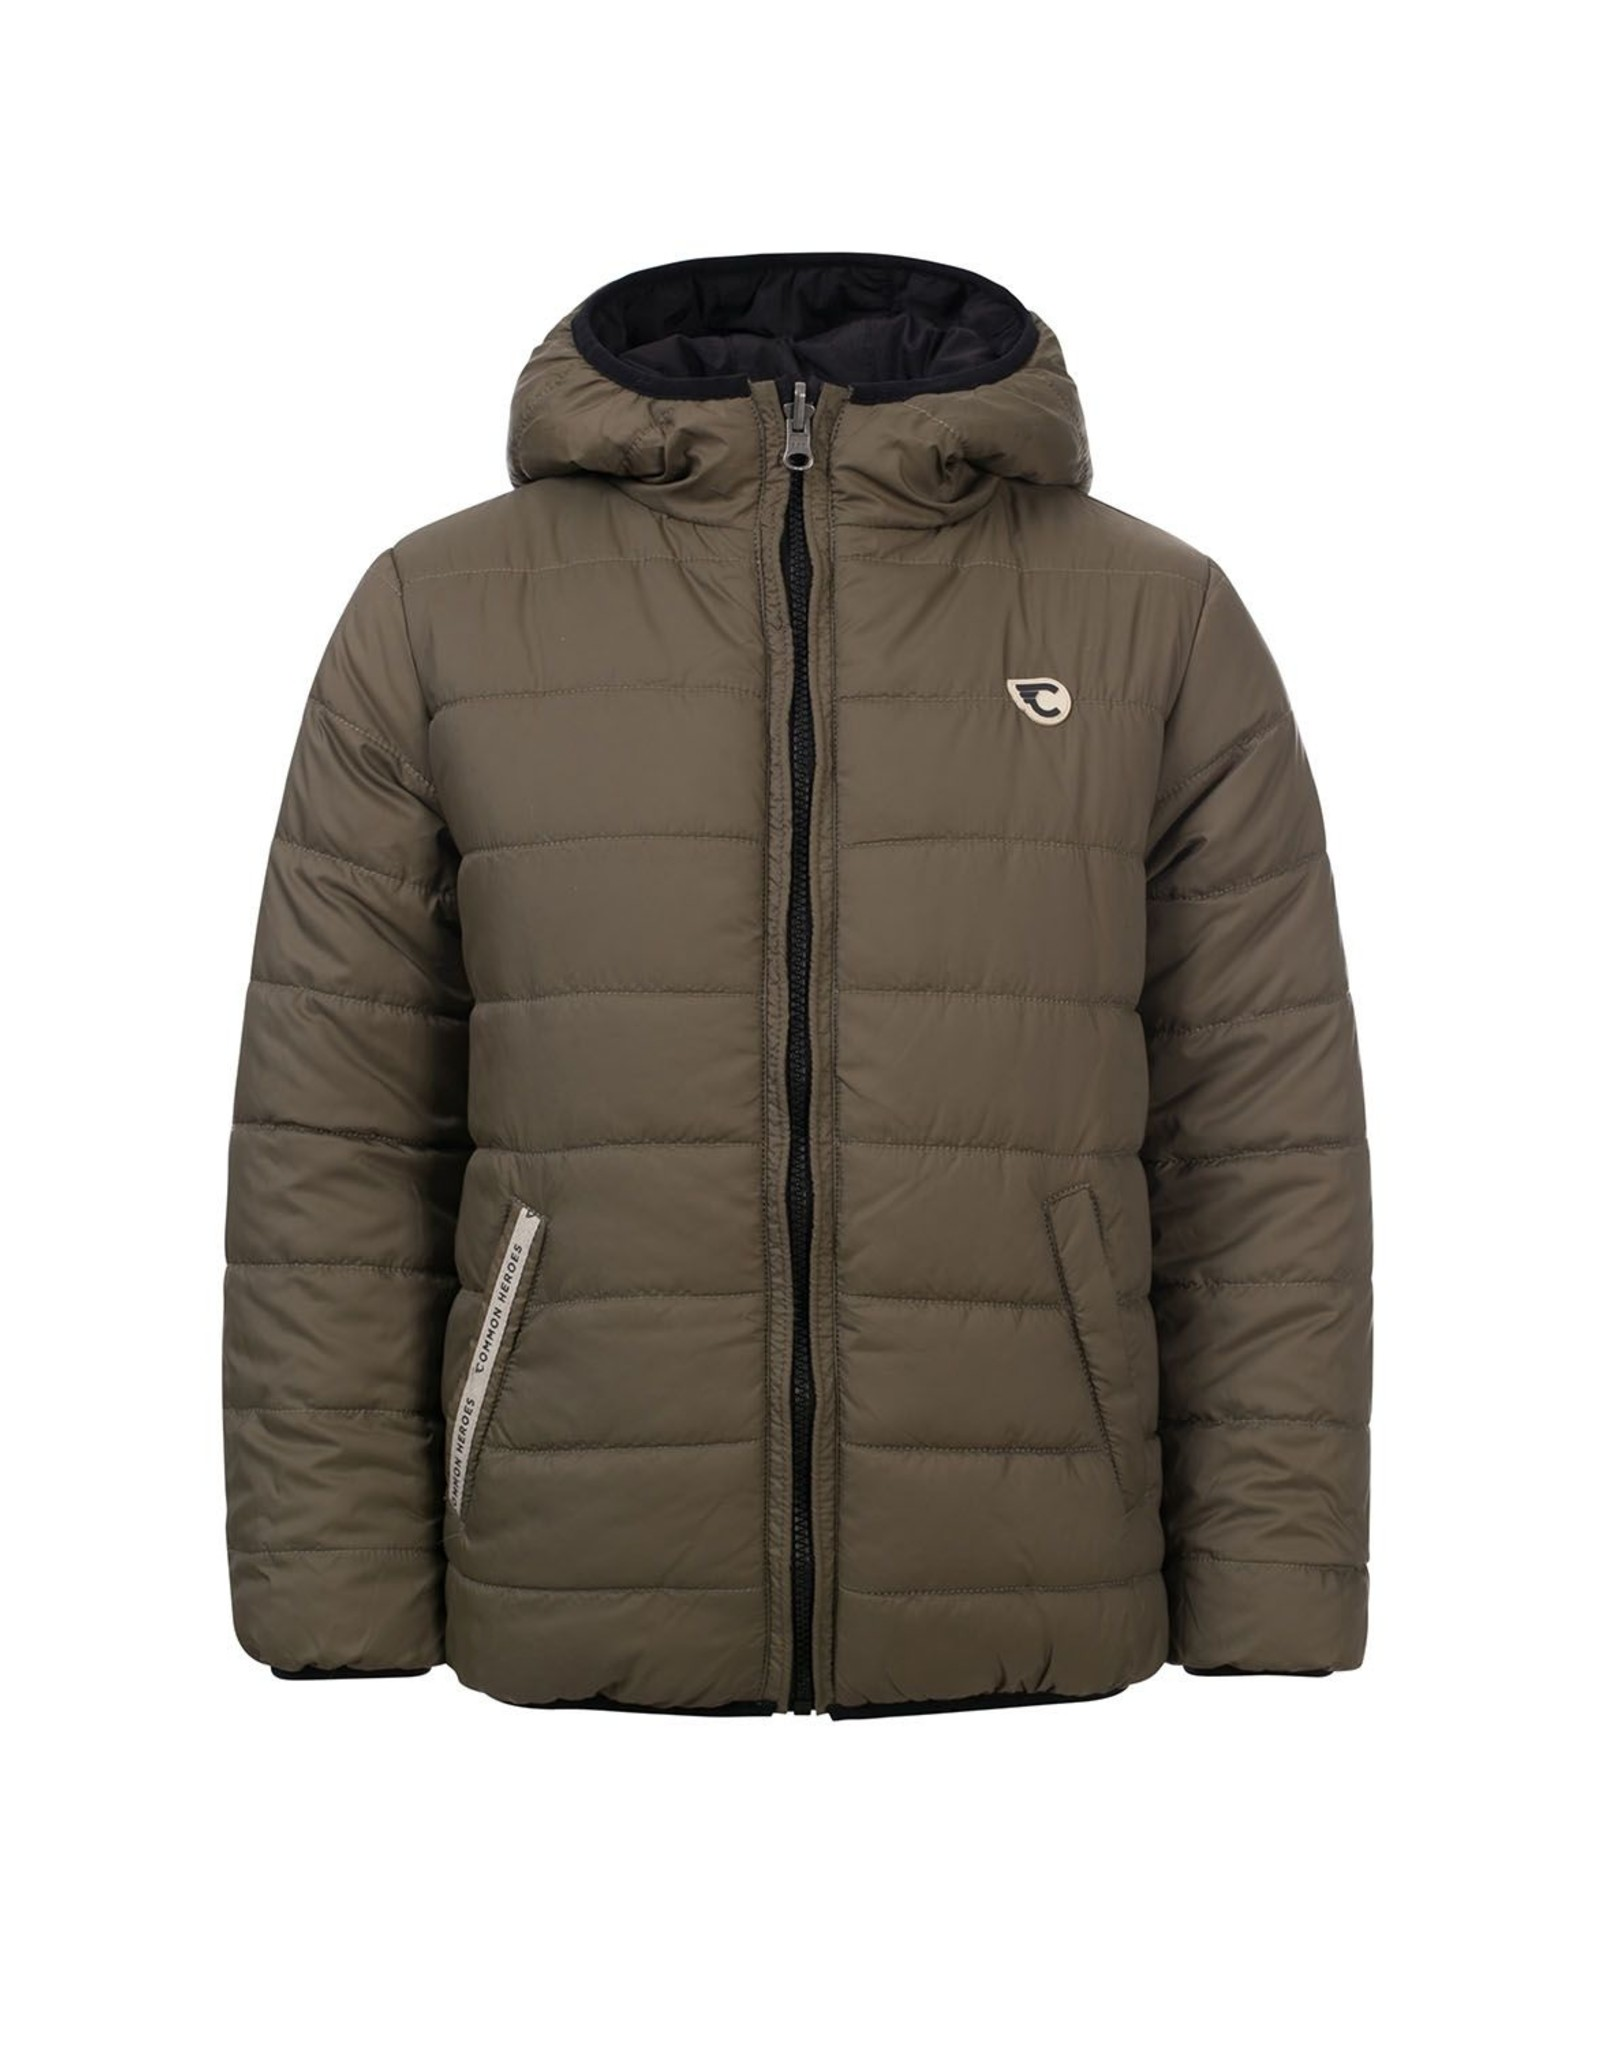 Common Heroes REVERSIBLE outerwear jacket